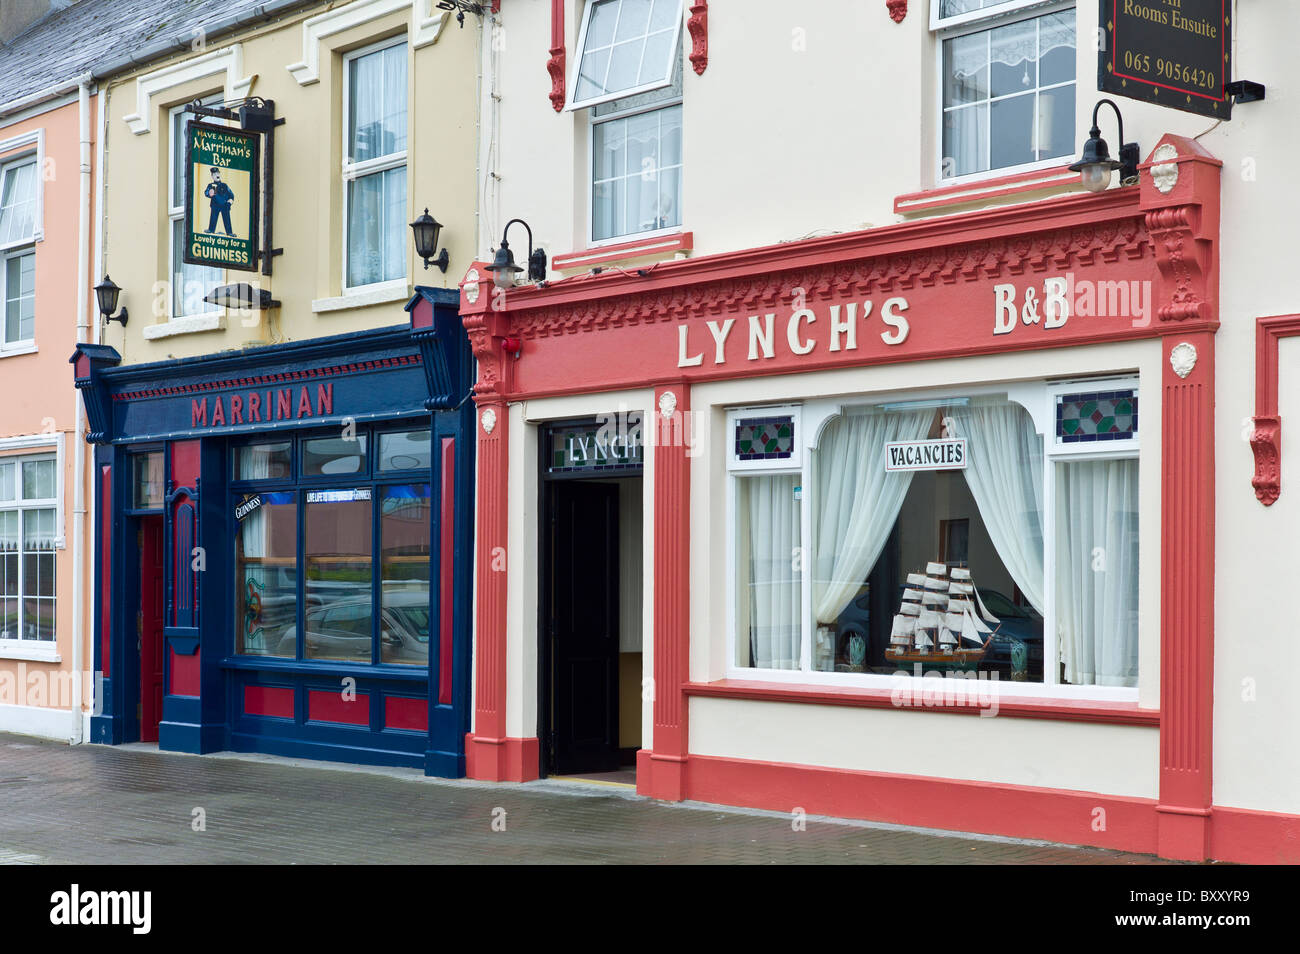 Lynch's Bed and Breakfast guesthouse and Marrinan bar in tourist resort town of Kilkee, County Clare, West of - Stock Image